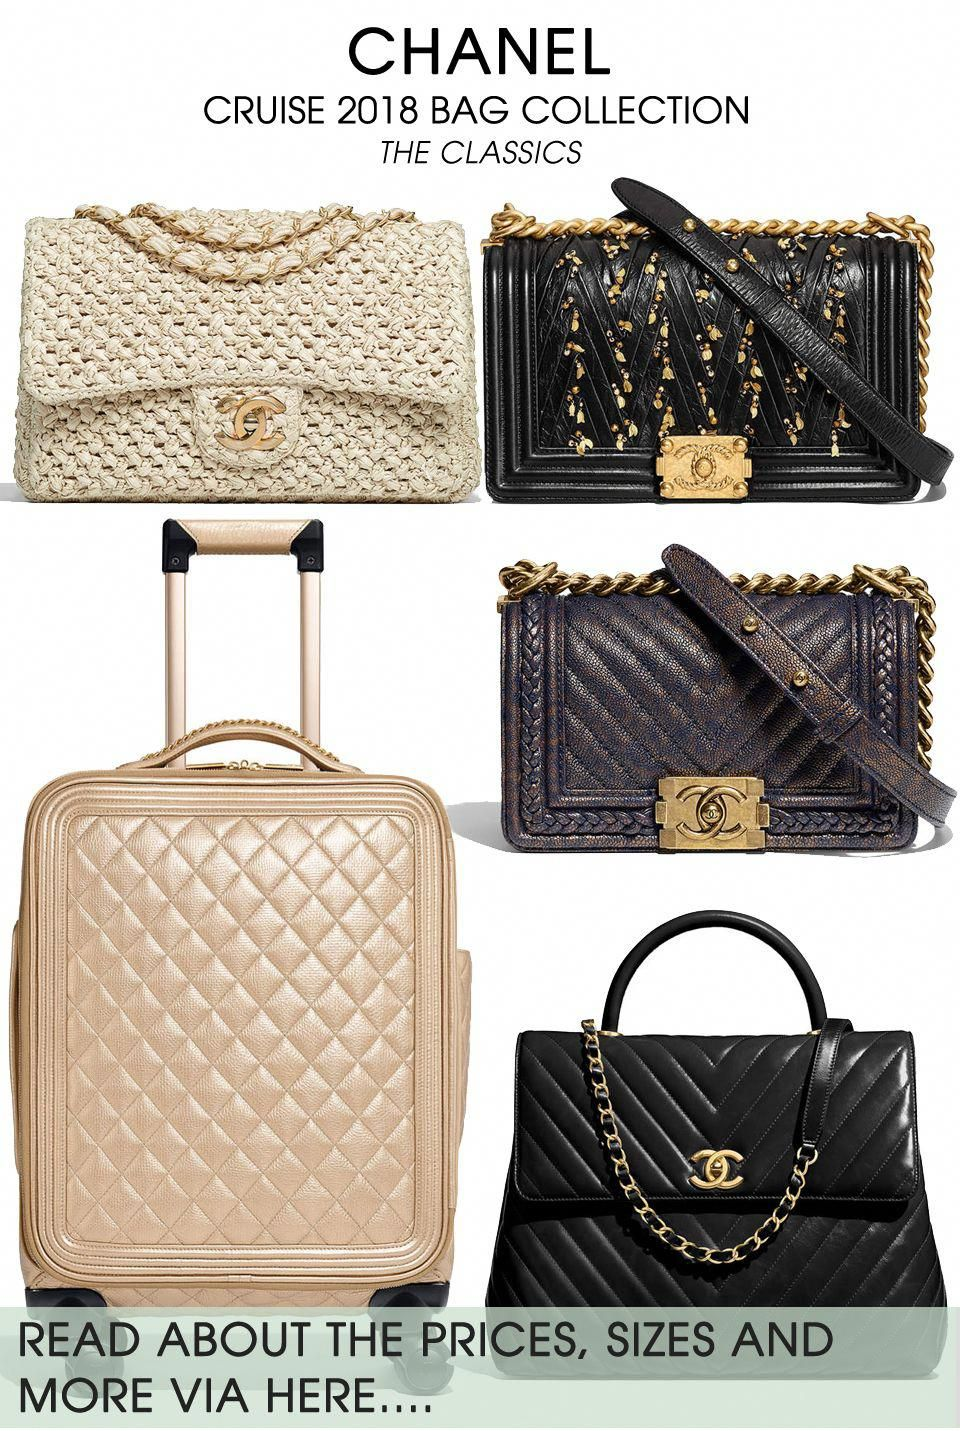 18e771f01dad Chanel Cruise 2018 Boy & Classic Bag Collection - And of course, there are  new styles of the Boy And Classic Bags. Oh yes, the Coco Handle Bag has  returned ...